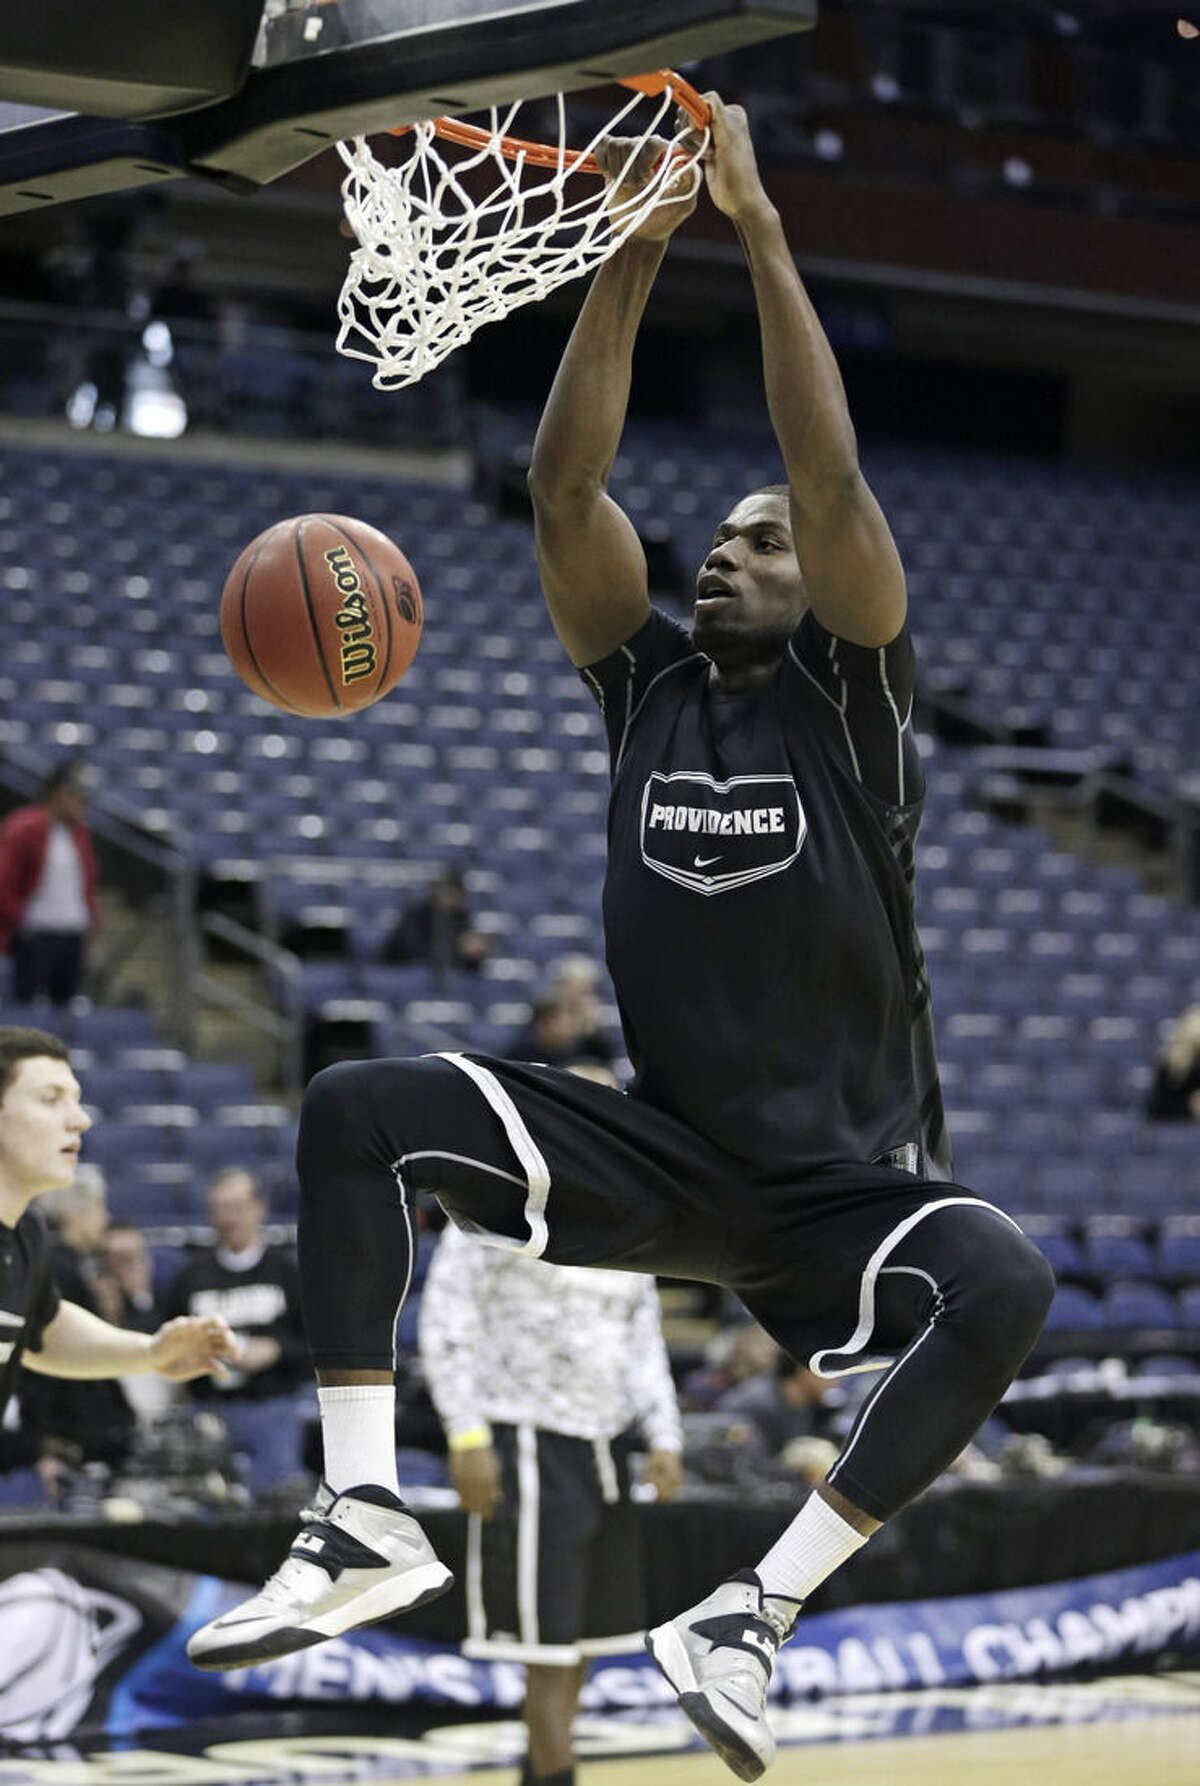 Providence's Ben Bentil dunks during practice at the NCAA college basketball tournament in Columbus, Ohio, Thursday, March 19, 2015. Providence plays Dayton in the second round on Friday. (AP Photo/Tony Dejak)